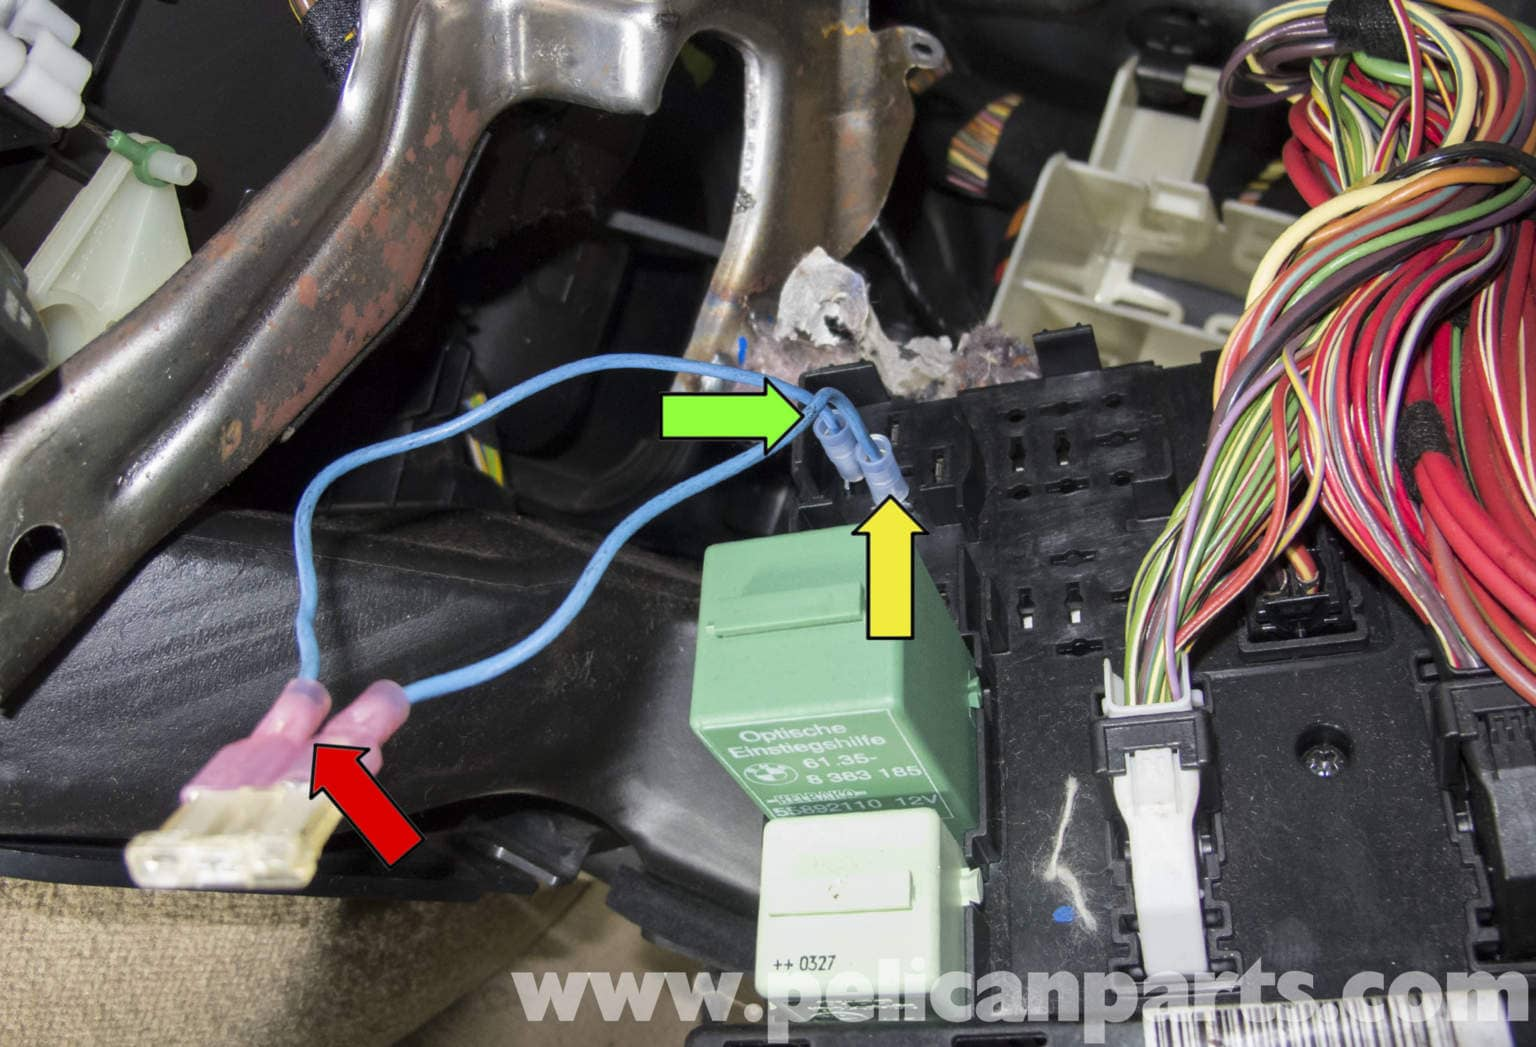 BMW X5 Fuel Pump Testing  E53 2000  2006    Pelican Parts DIY Maintenance Article